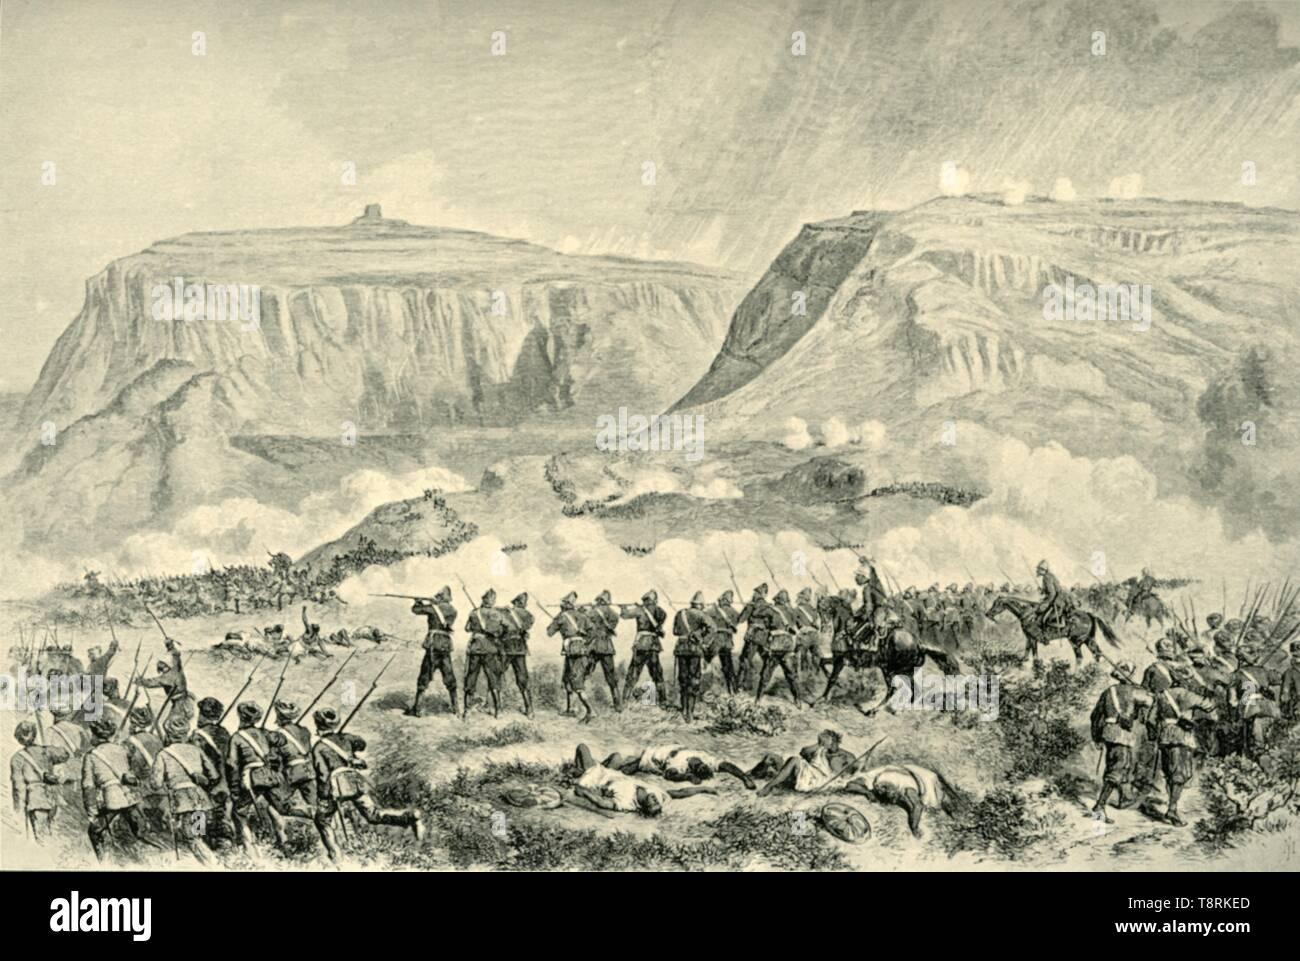 'The Abyssinia Expedition: The Battle of Arogee...on Good Friday, April 10, 1868', (1901) Creator: Unknown. - Stock Image